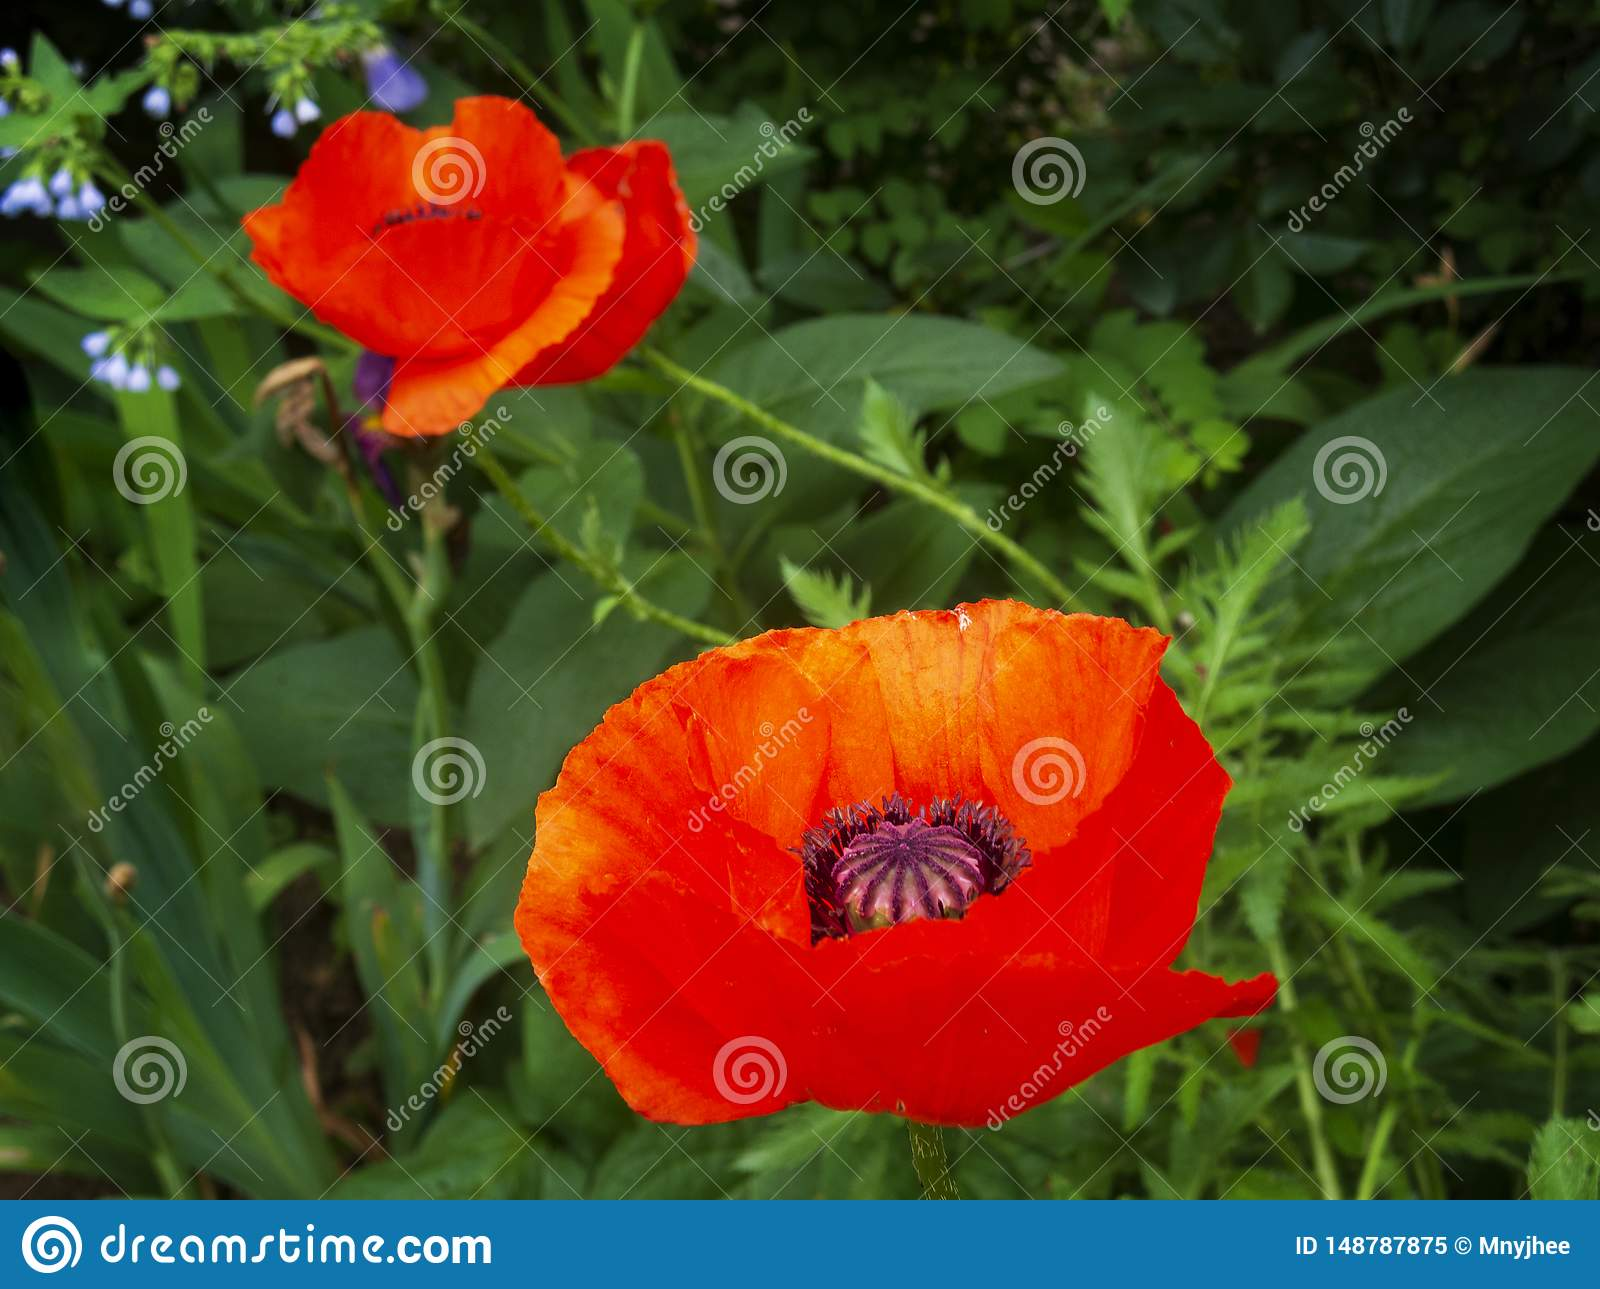 Colorful red poppies